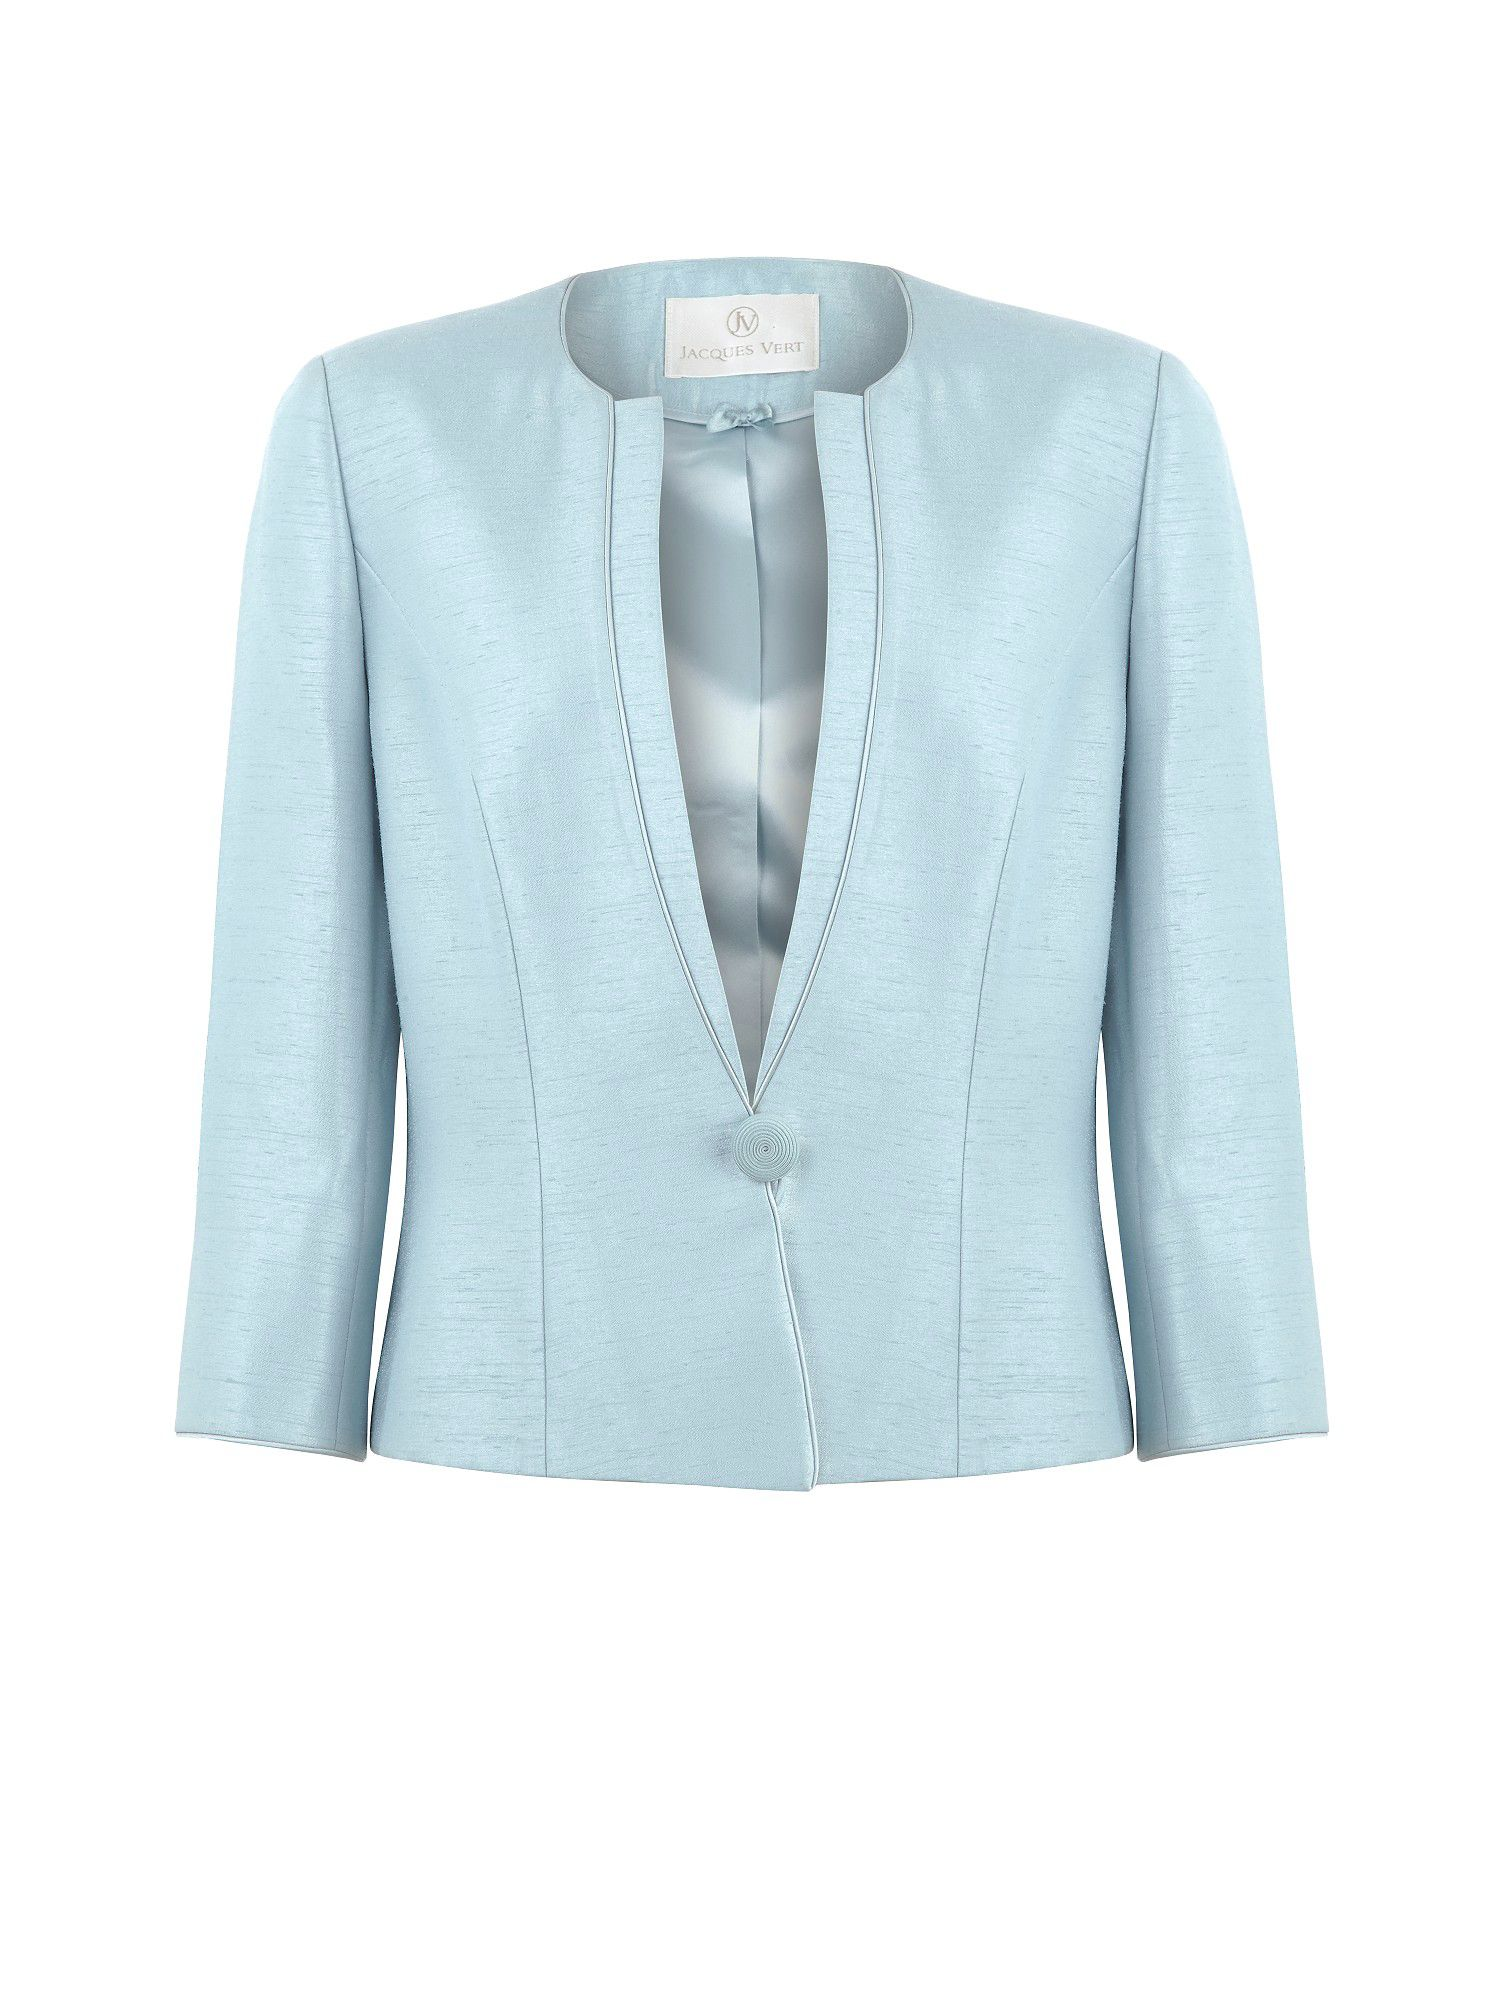 Misty blue occasion jacket